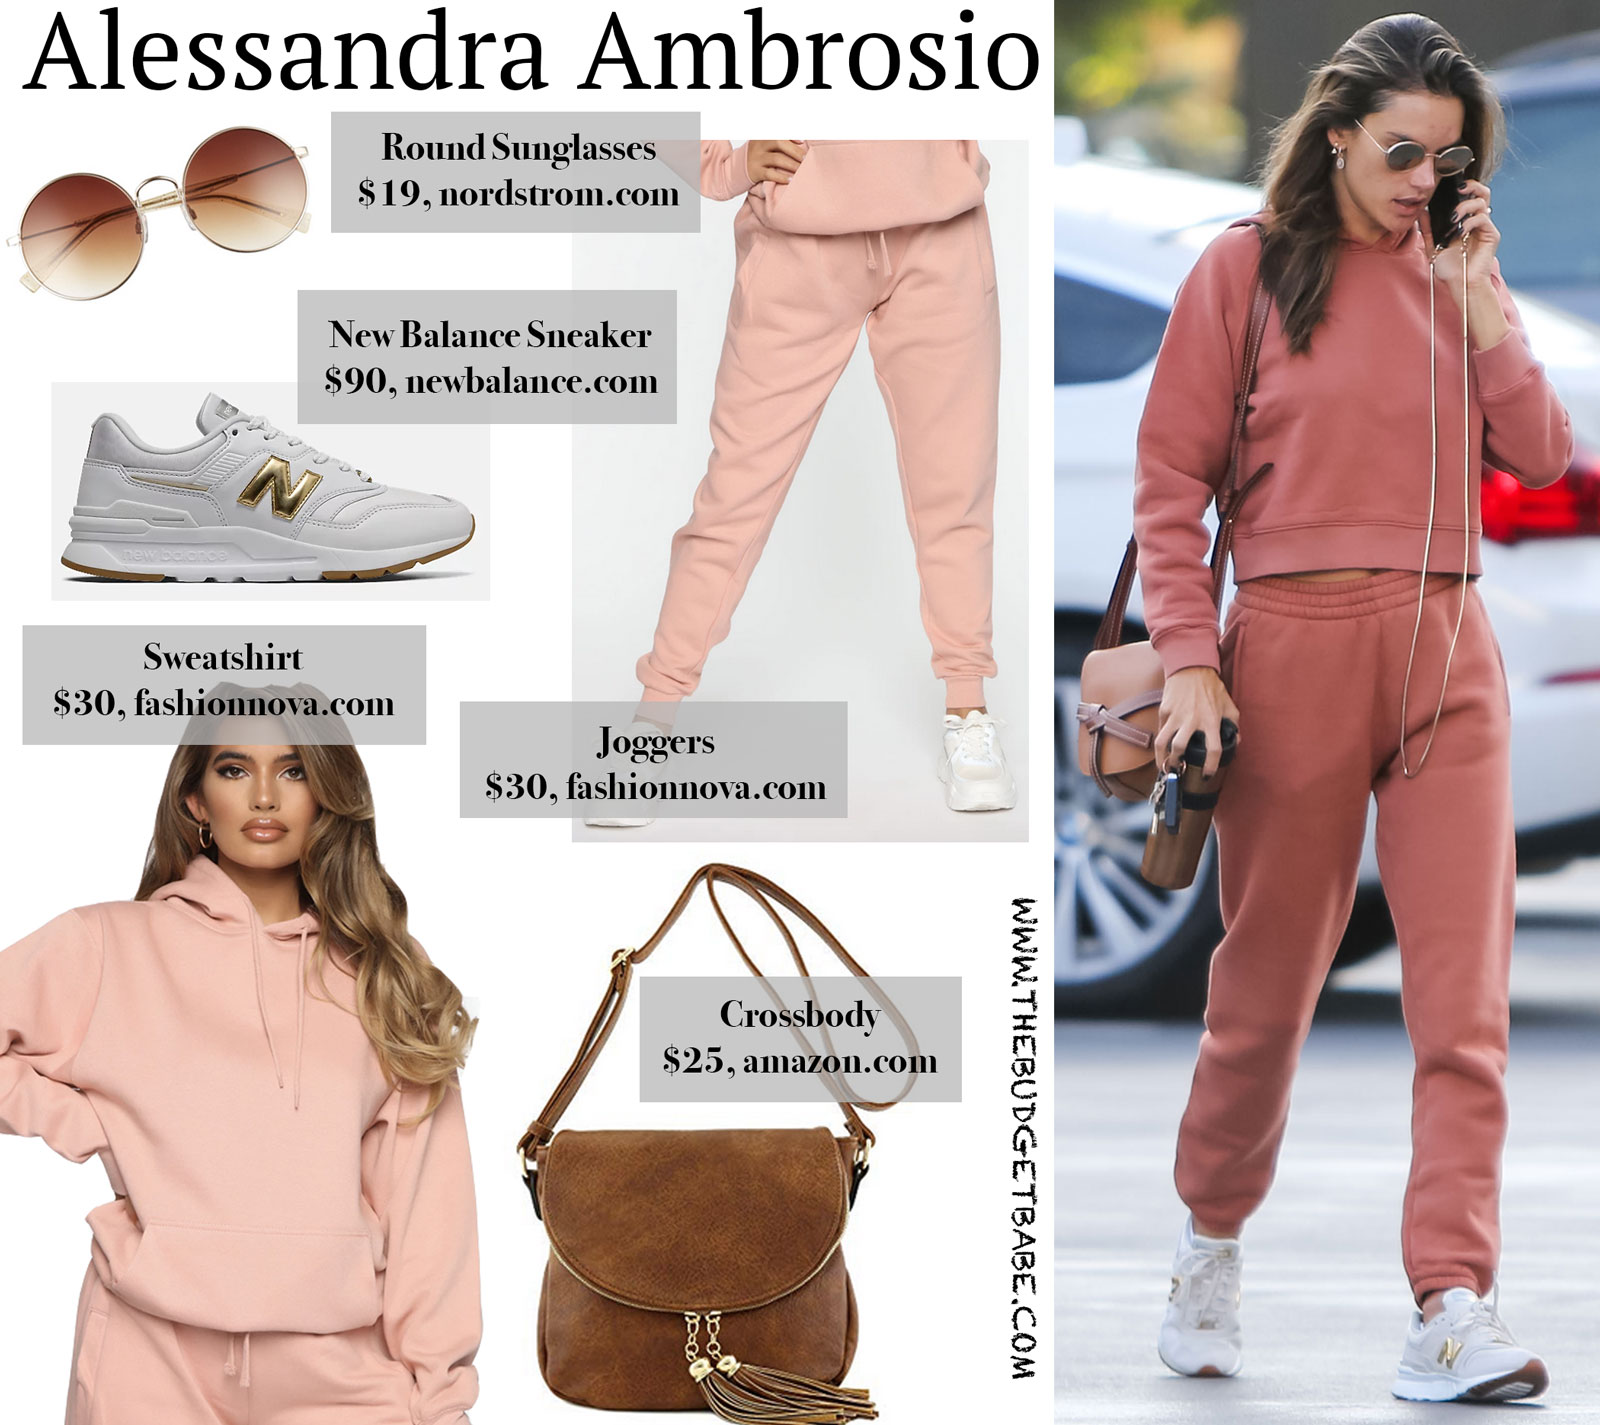 Alessandra Ambrosio Outdoor Voices Sweatsuit Look for Less